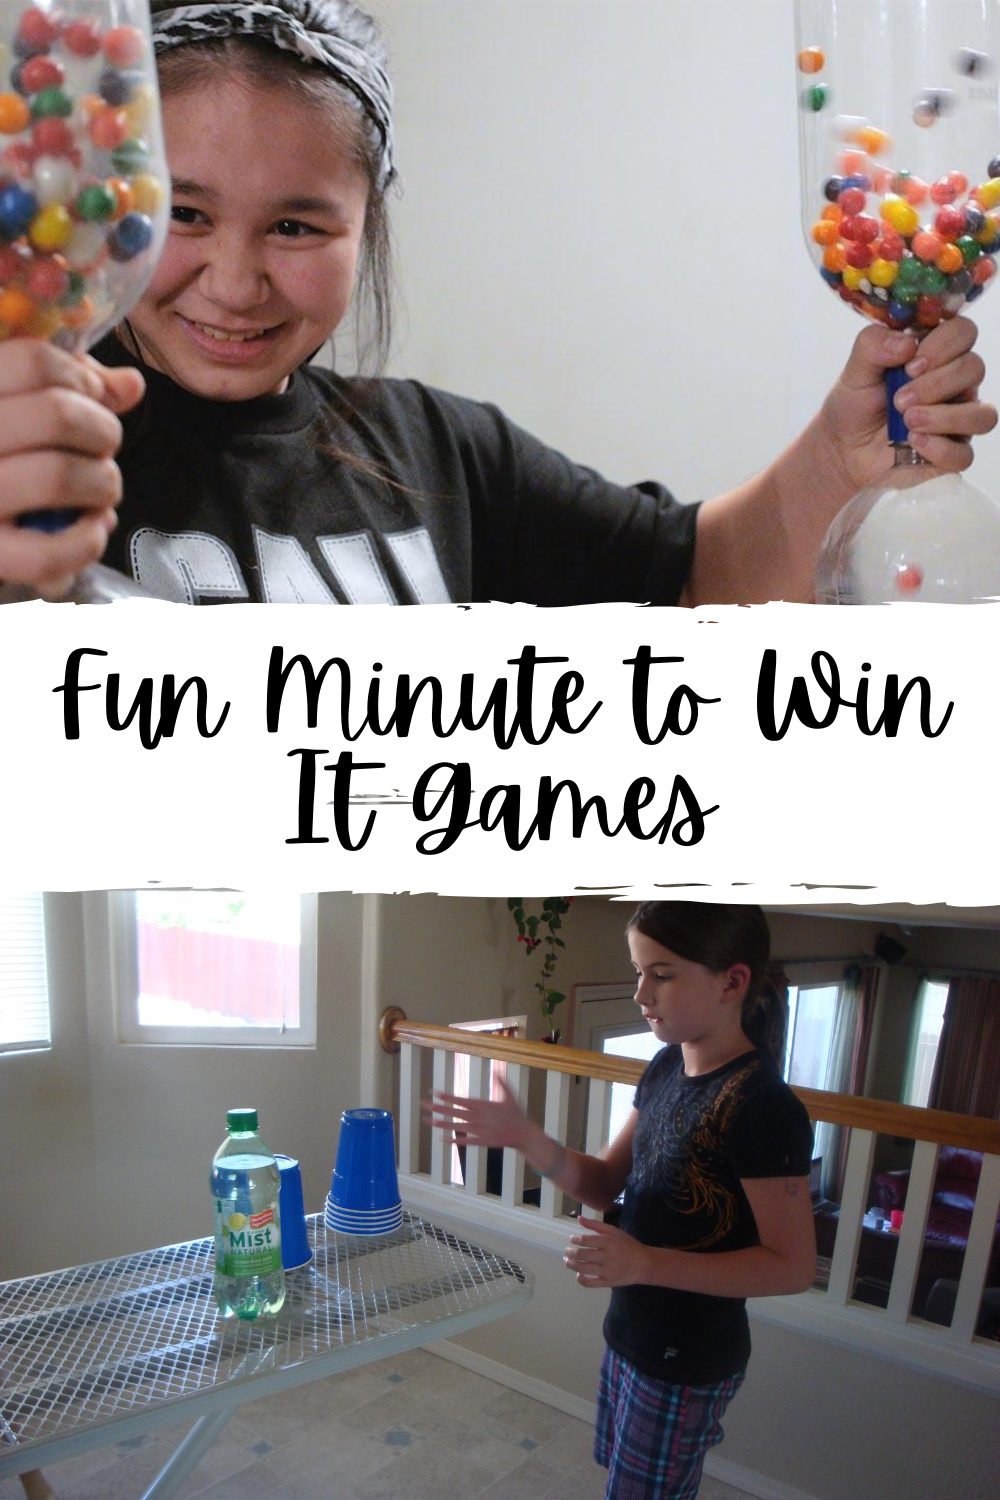 Minute to Win It NYE Games for Kids